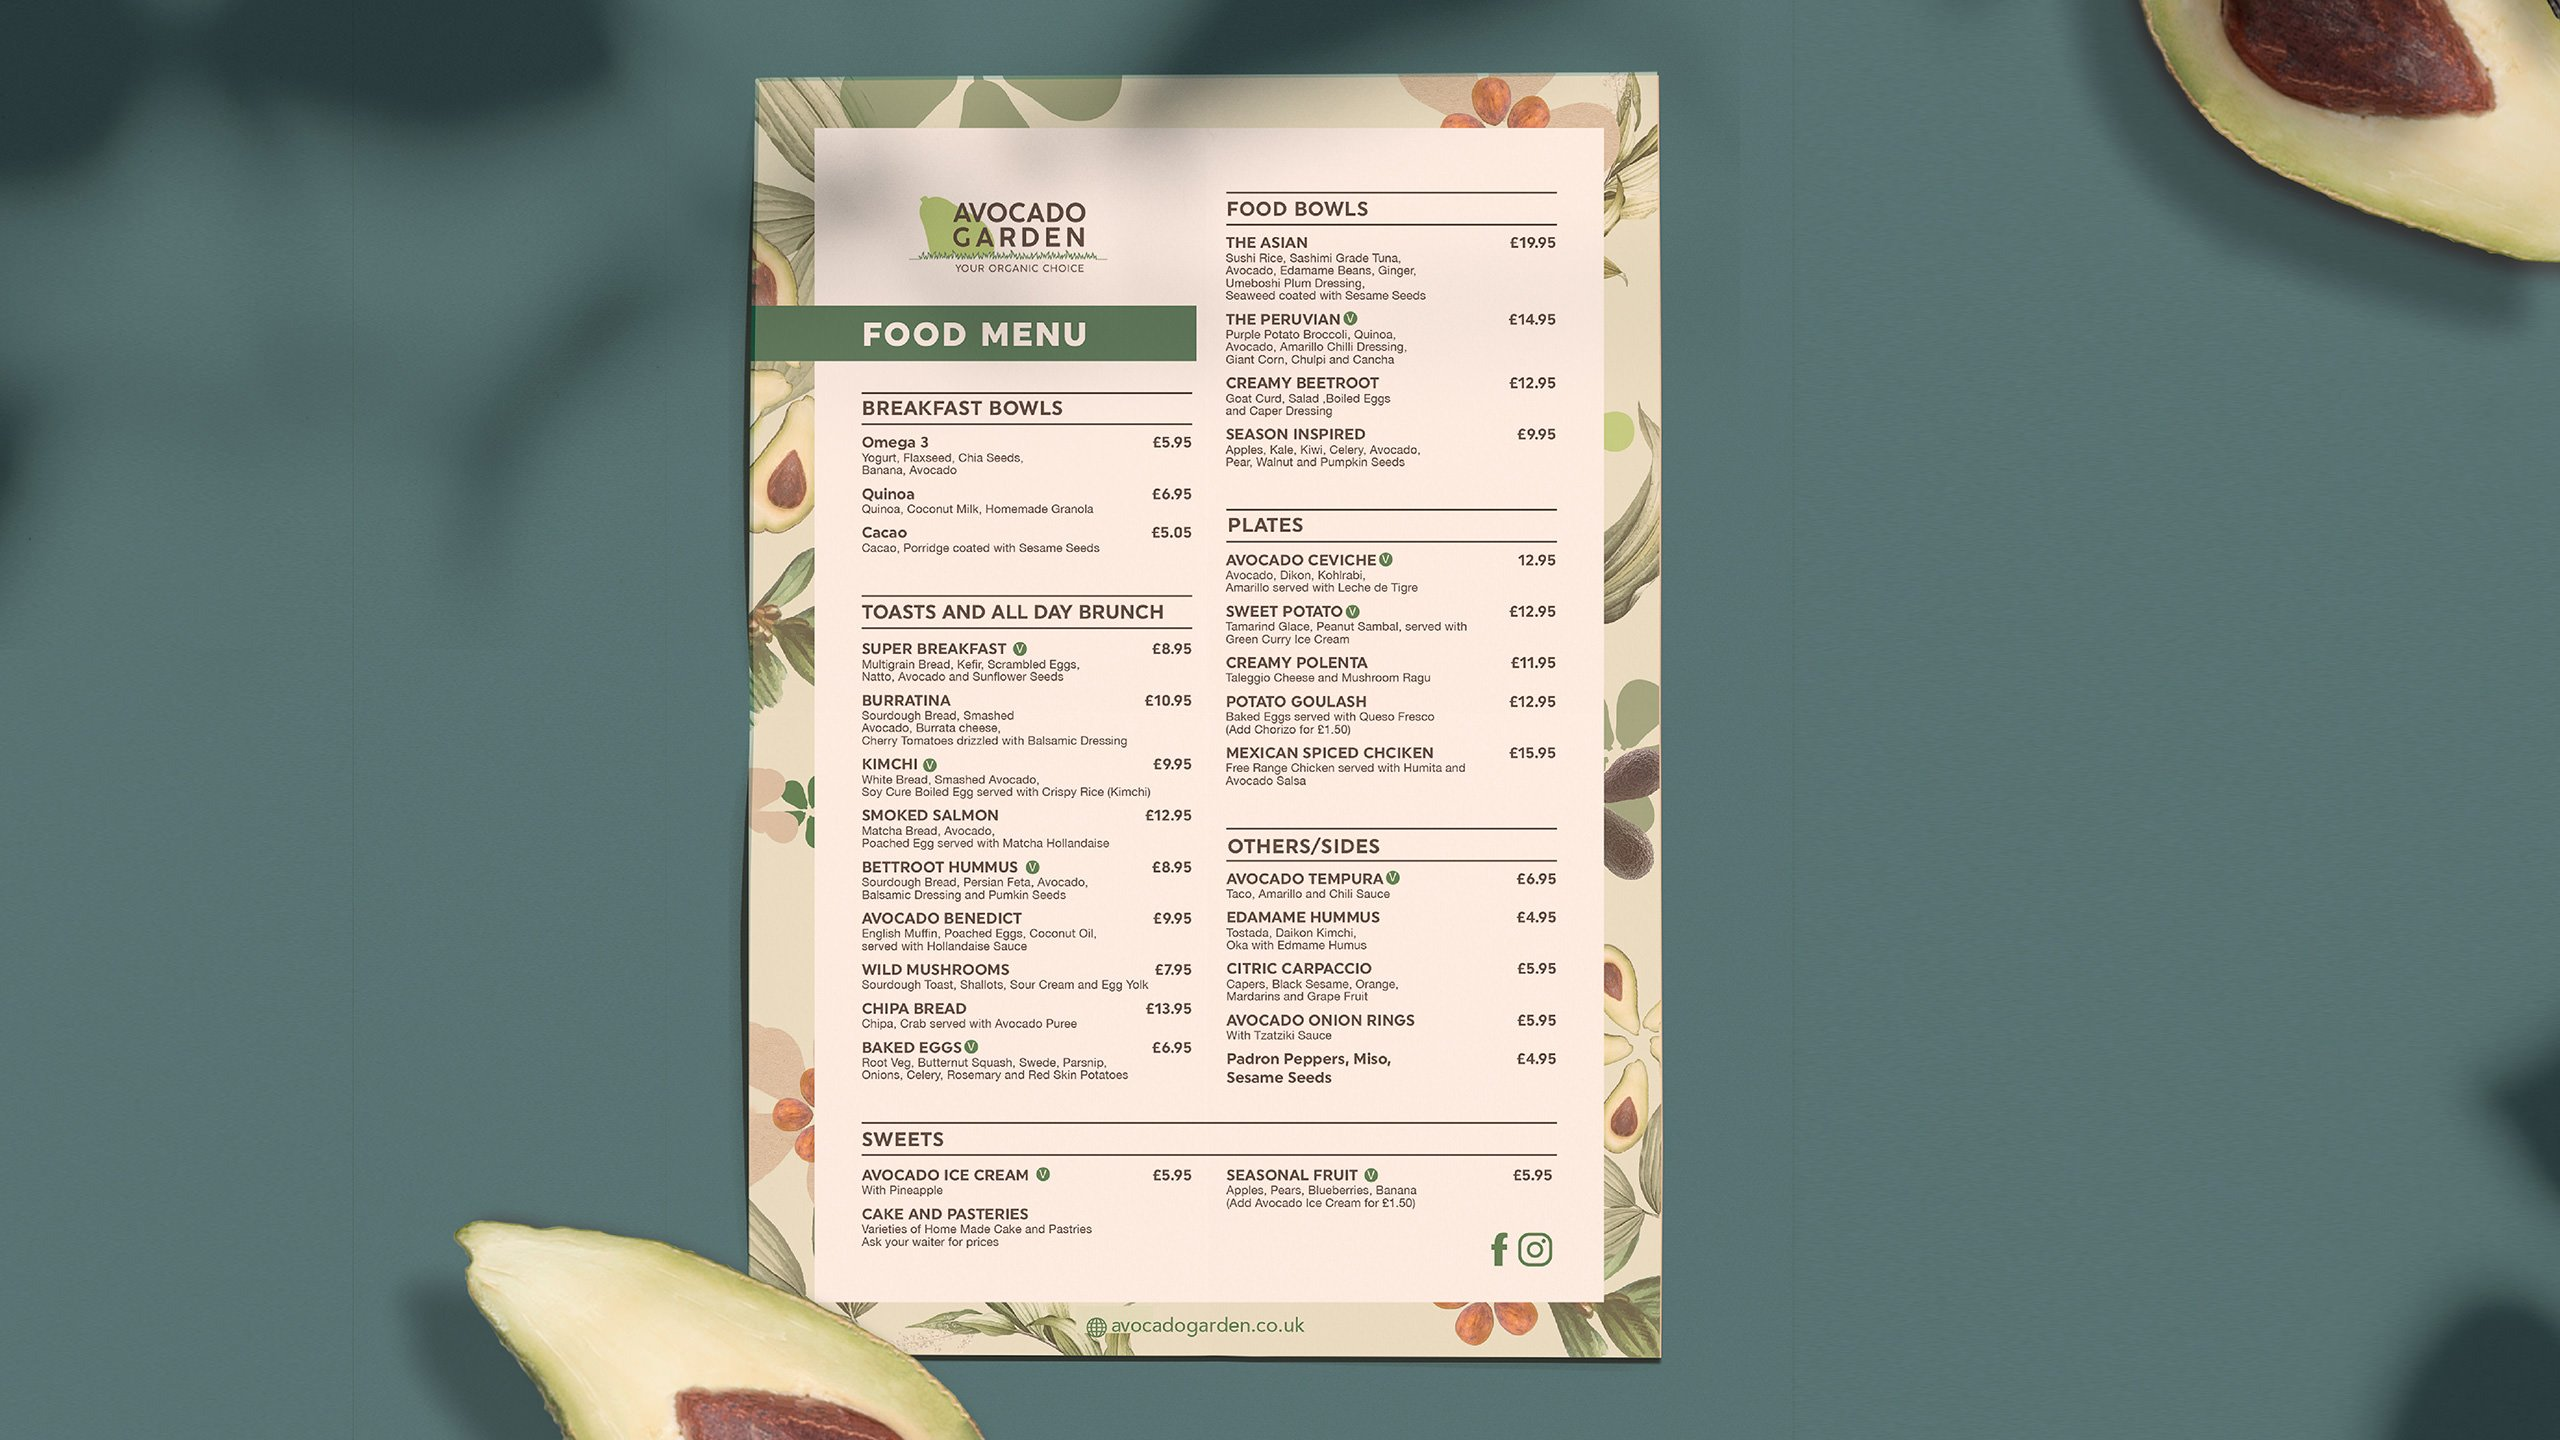 Avocado Garden restaurant menu